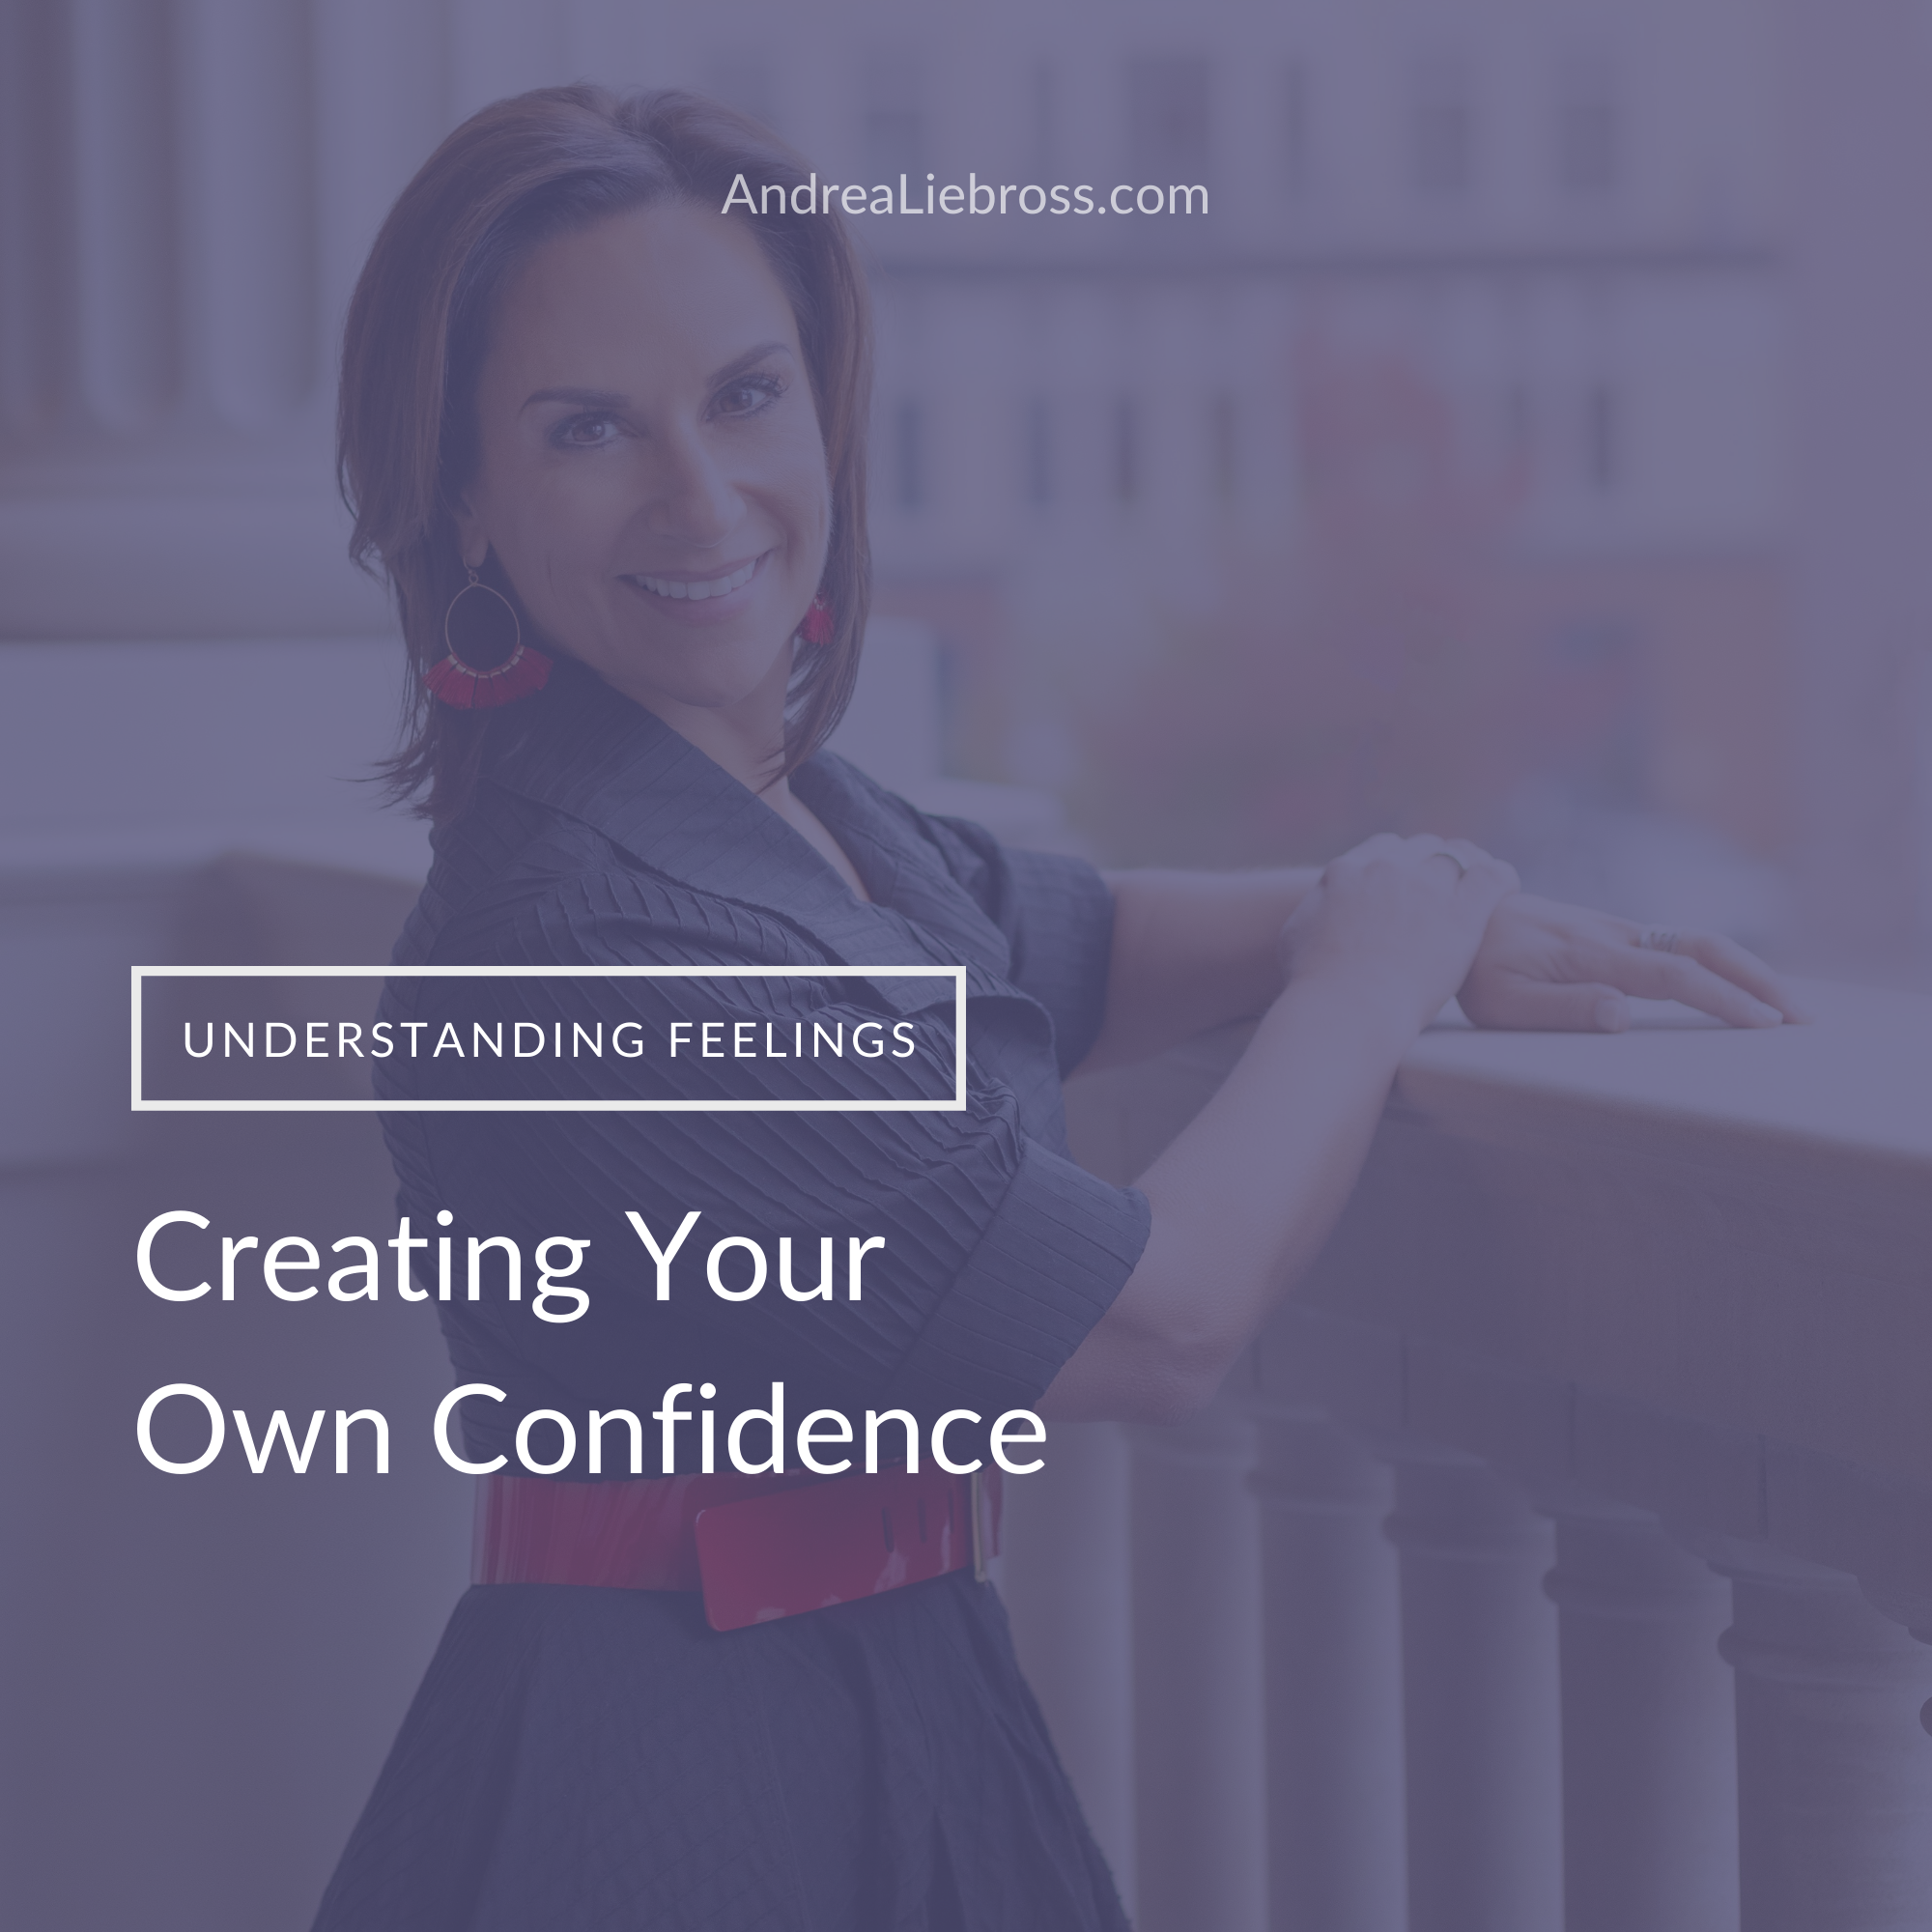 Creating Your Own Confidence